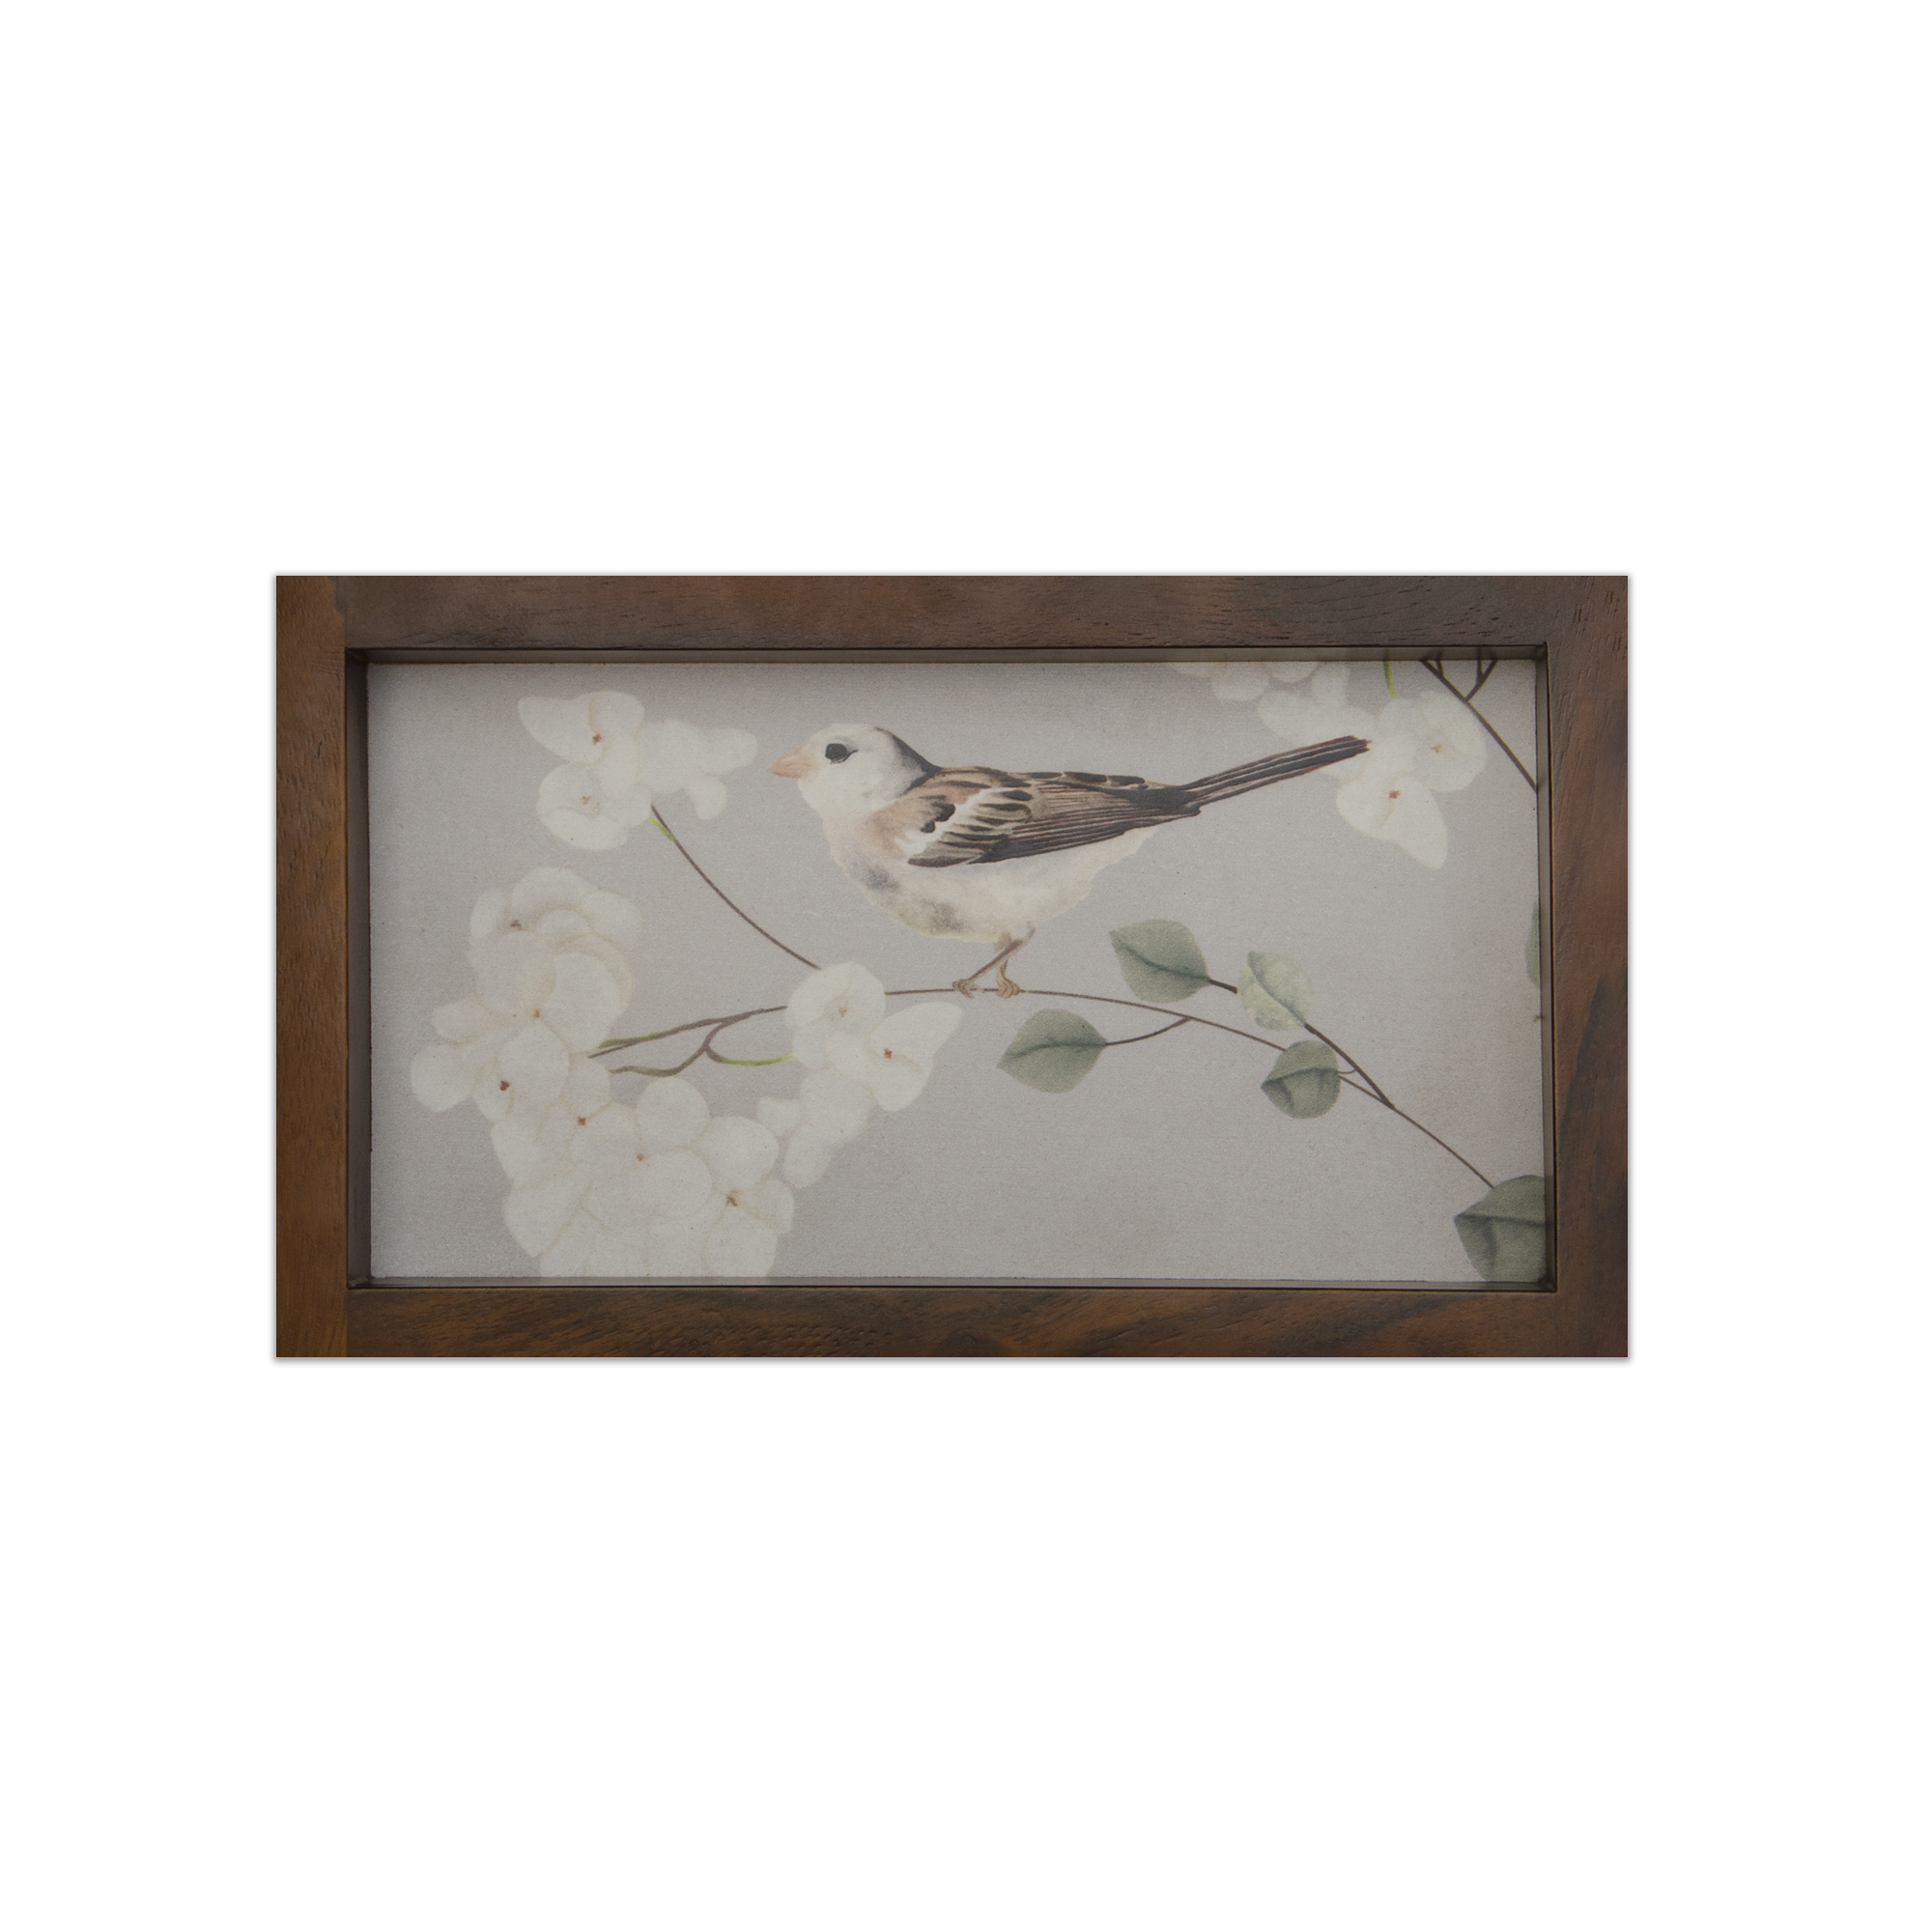 A Bird on Hydrangeas - Wooden Tray